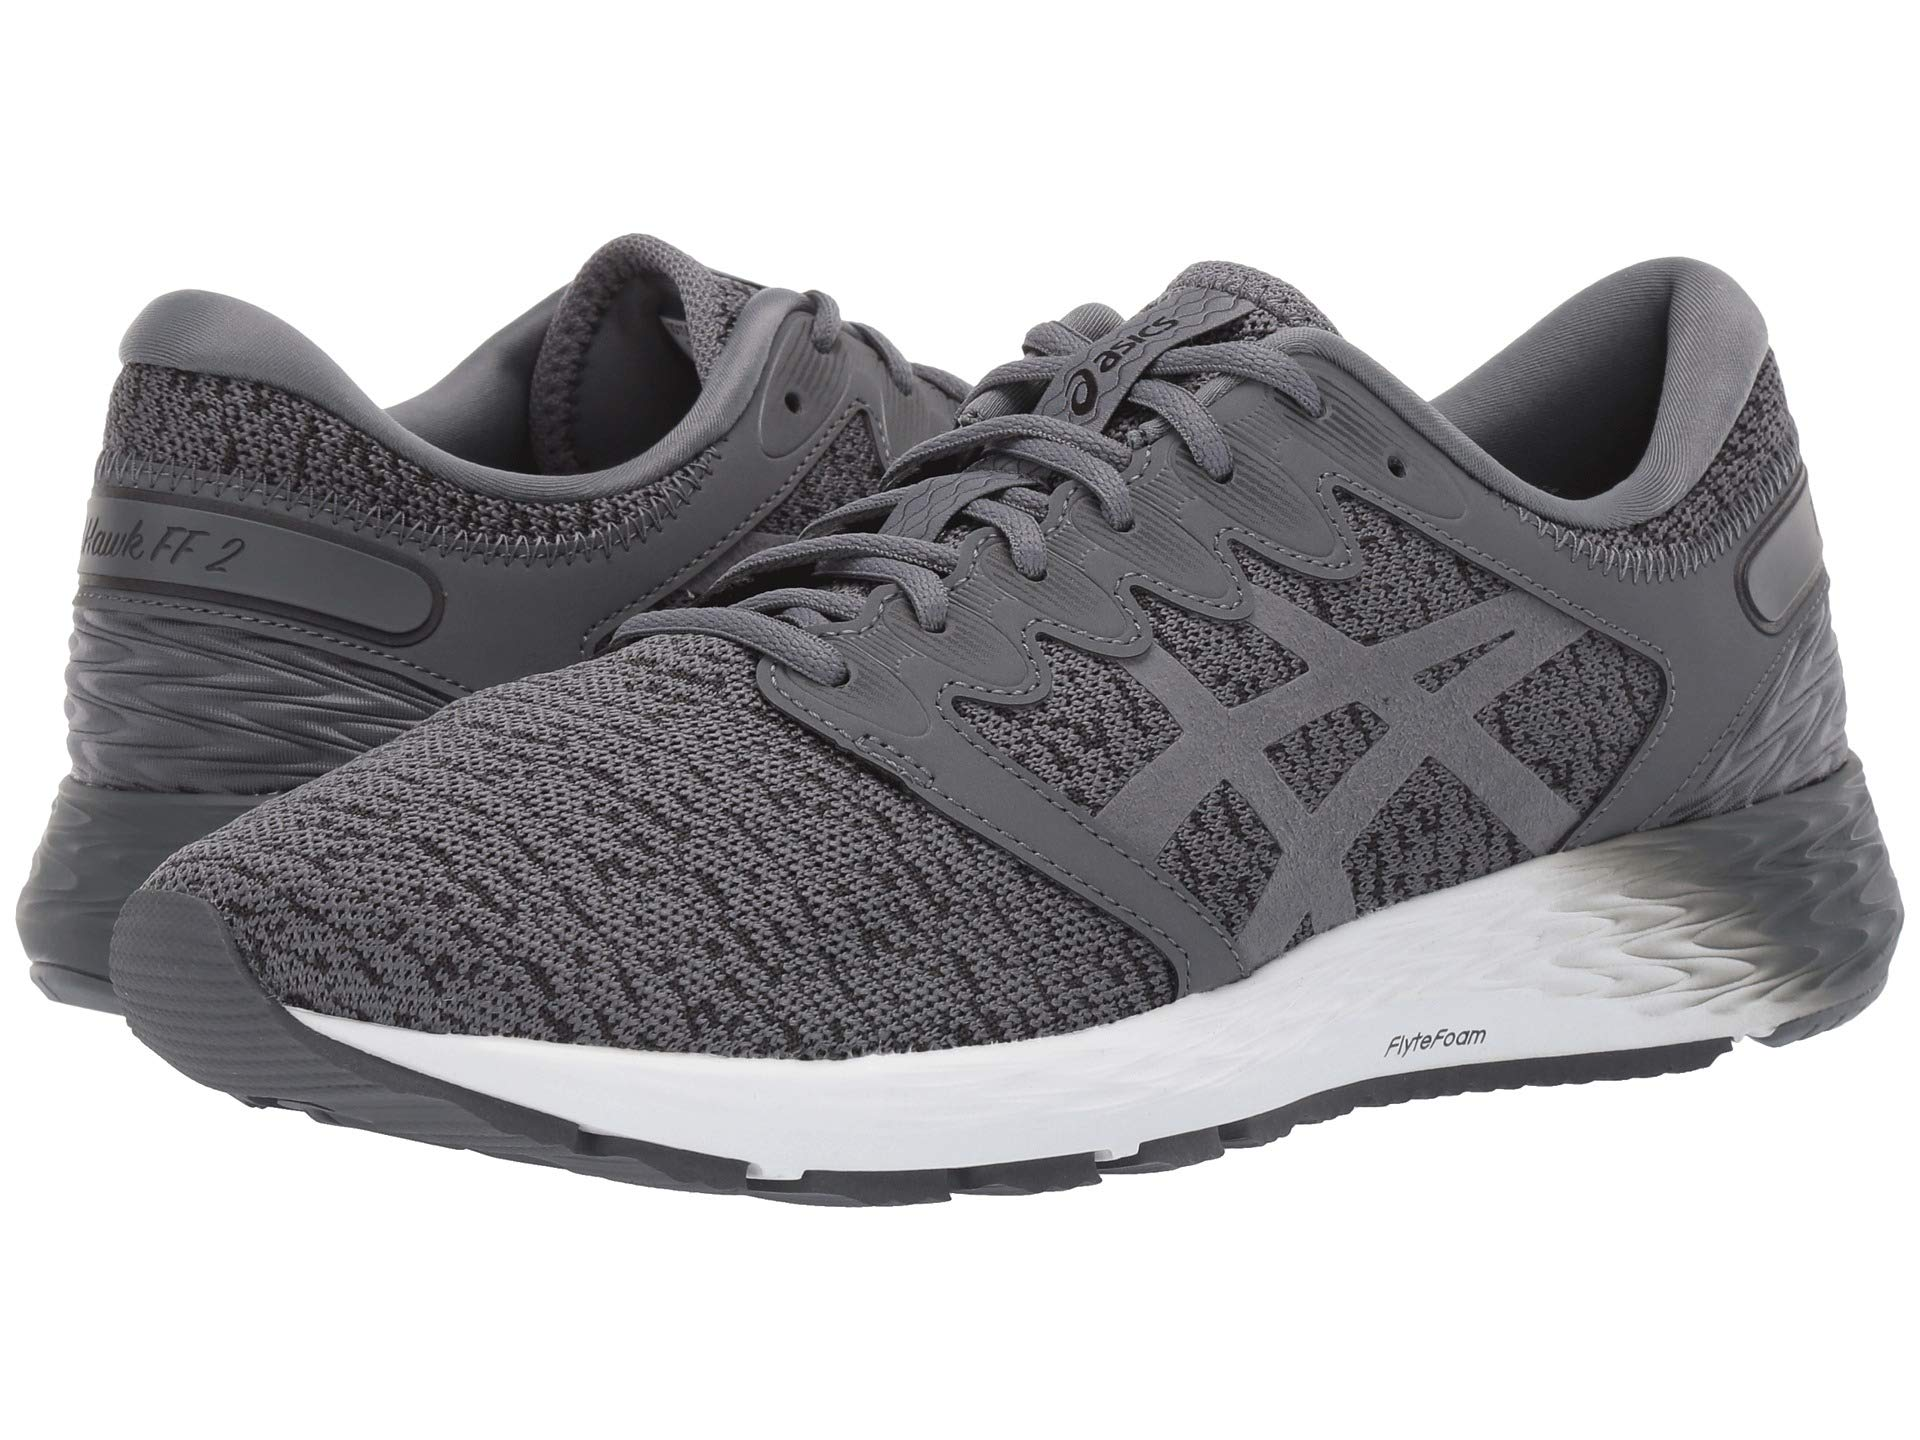 Кроссовки ASICS Roadhawk FF 2 MX Gray, 41.5 (260 мм) (10160471)